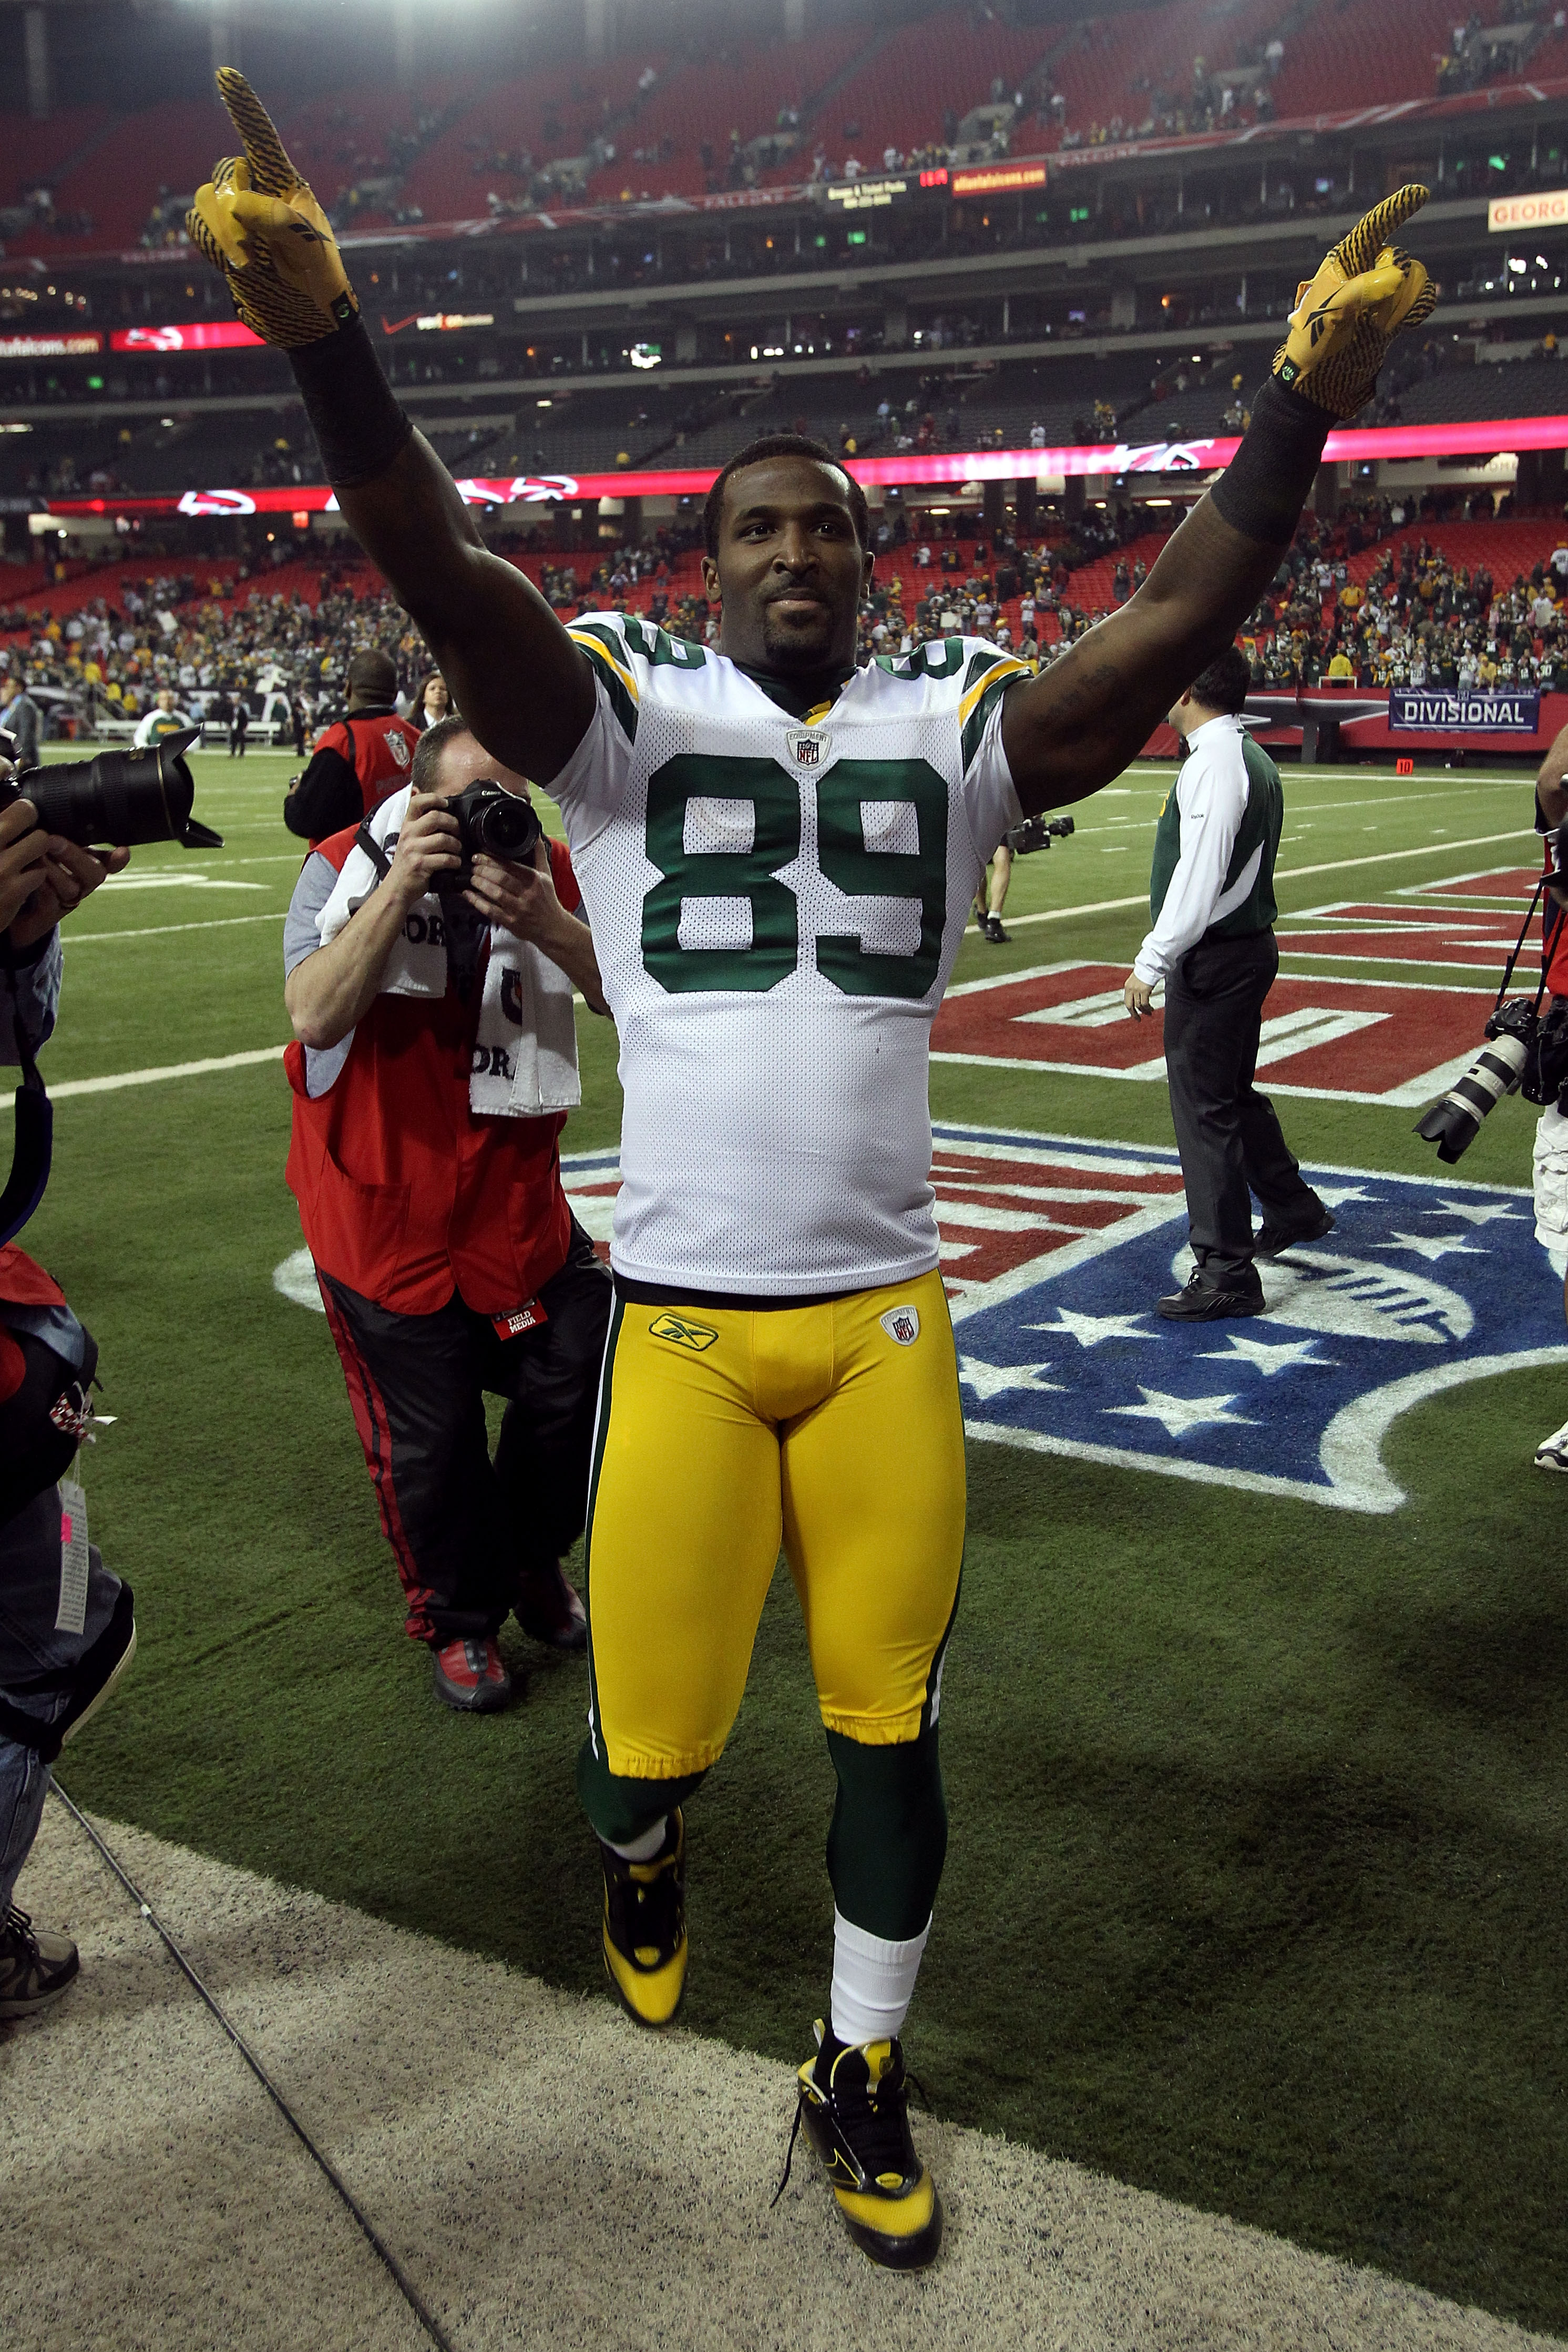 ATLANTA, GA - JANUARY 15:  James Jones #89 of the Green Bay Packers celebrates as he walks off the field after the Pakers won 48-21 against the Atlanta Falcons during their 2011 NFC divisional playoff game at Georgia Dome on January 15, 2011 in Atlanta, G